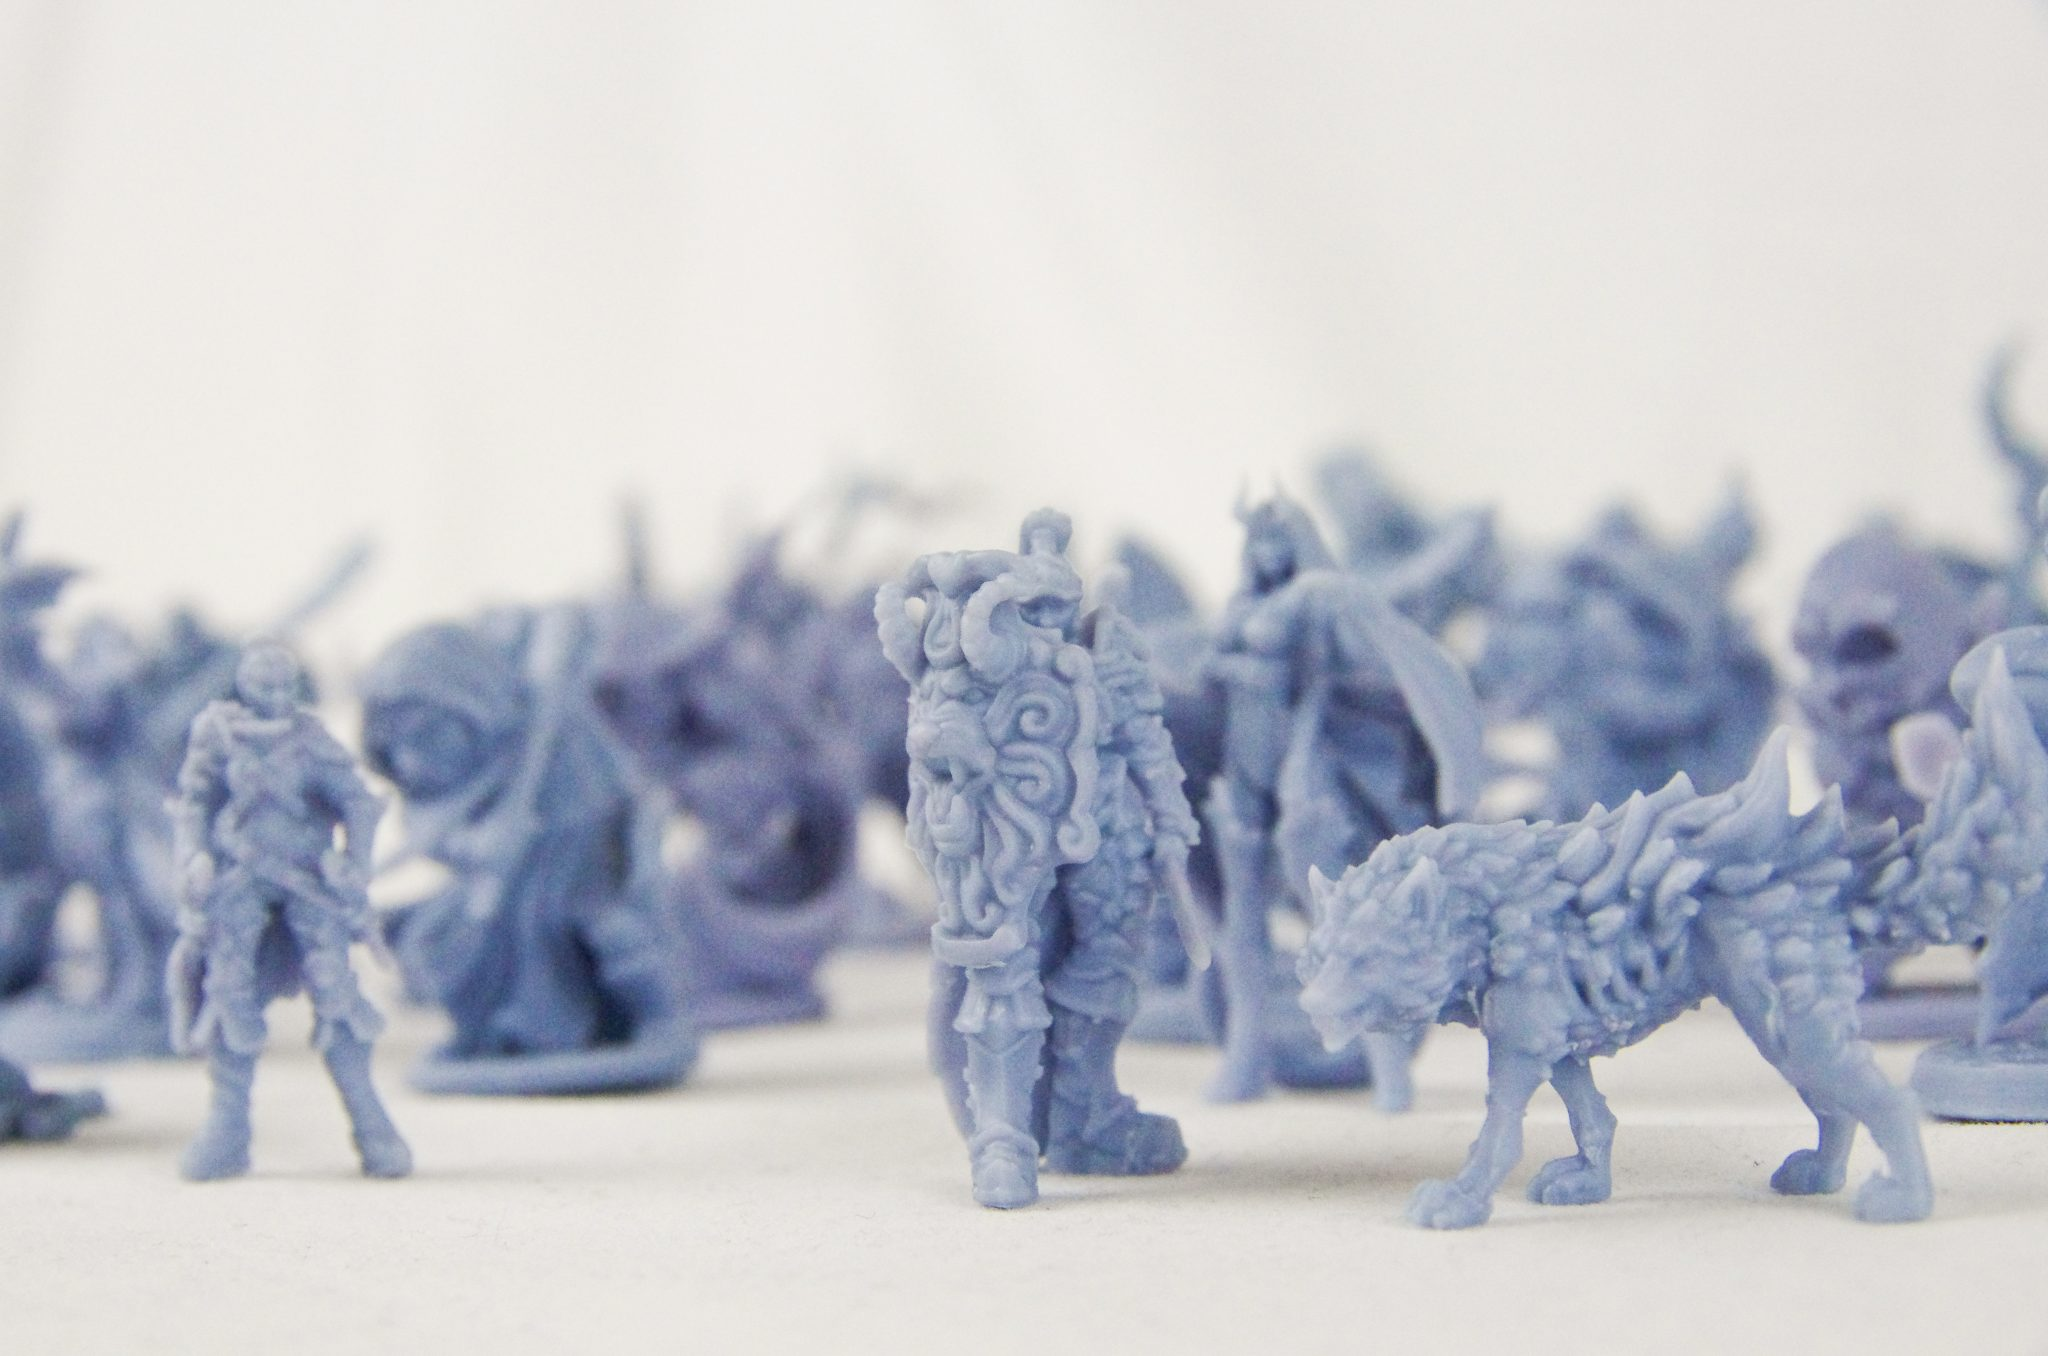 MyMiniFactory 3DPrinted & Delivered miniatures. Photo via MyMiniFactory.